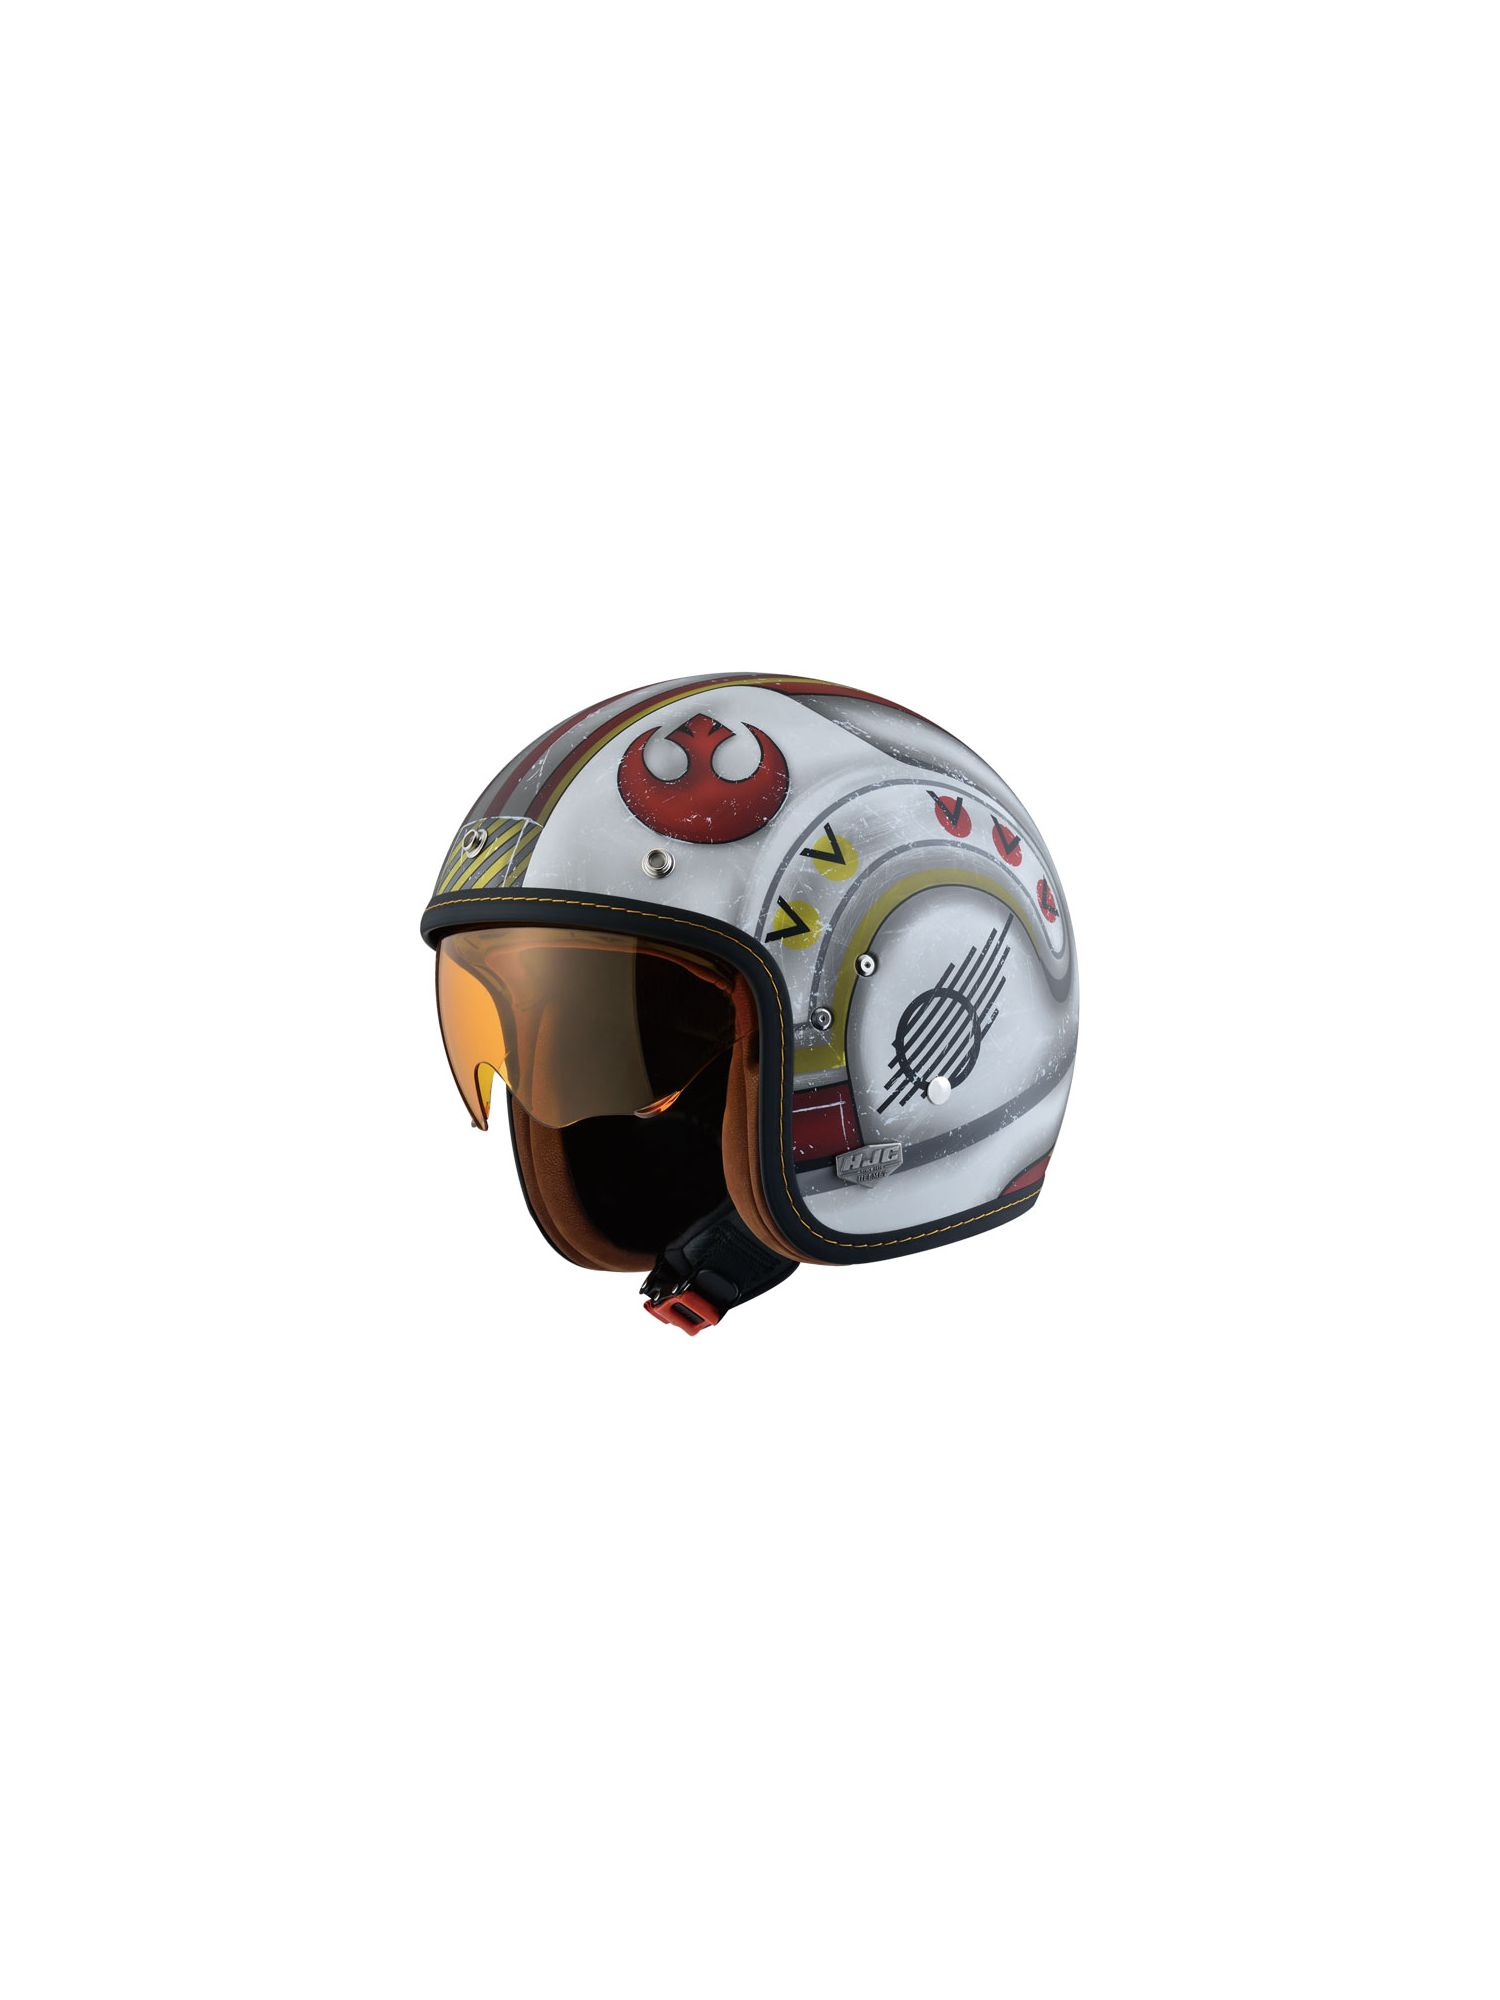 HJH126 | STARWARS FG-70S X-WING ファイター パイロット[1color]